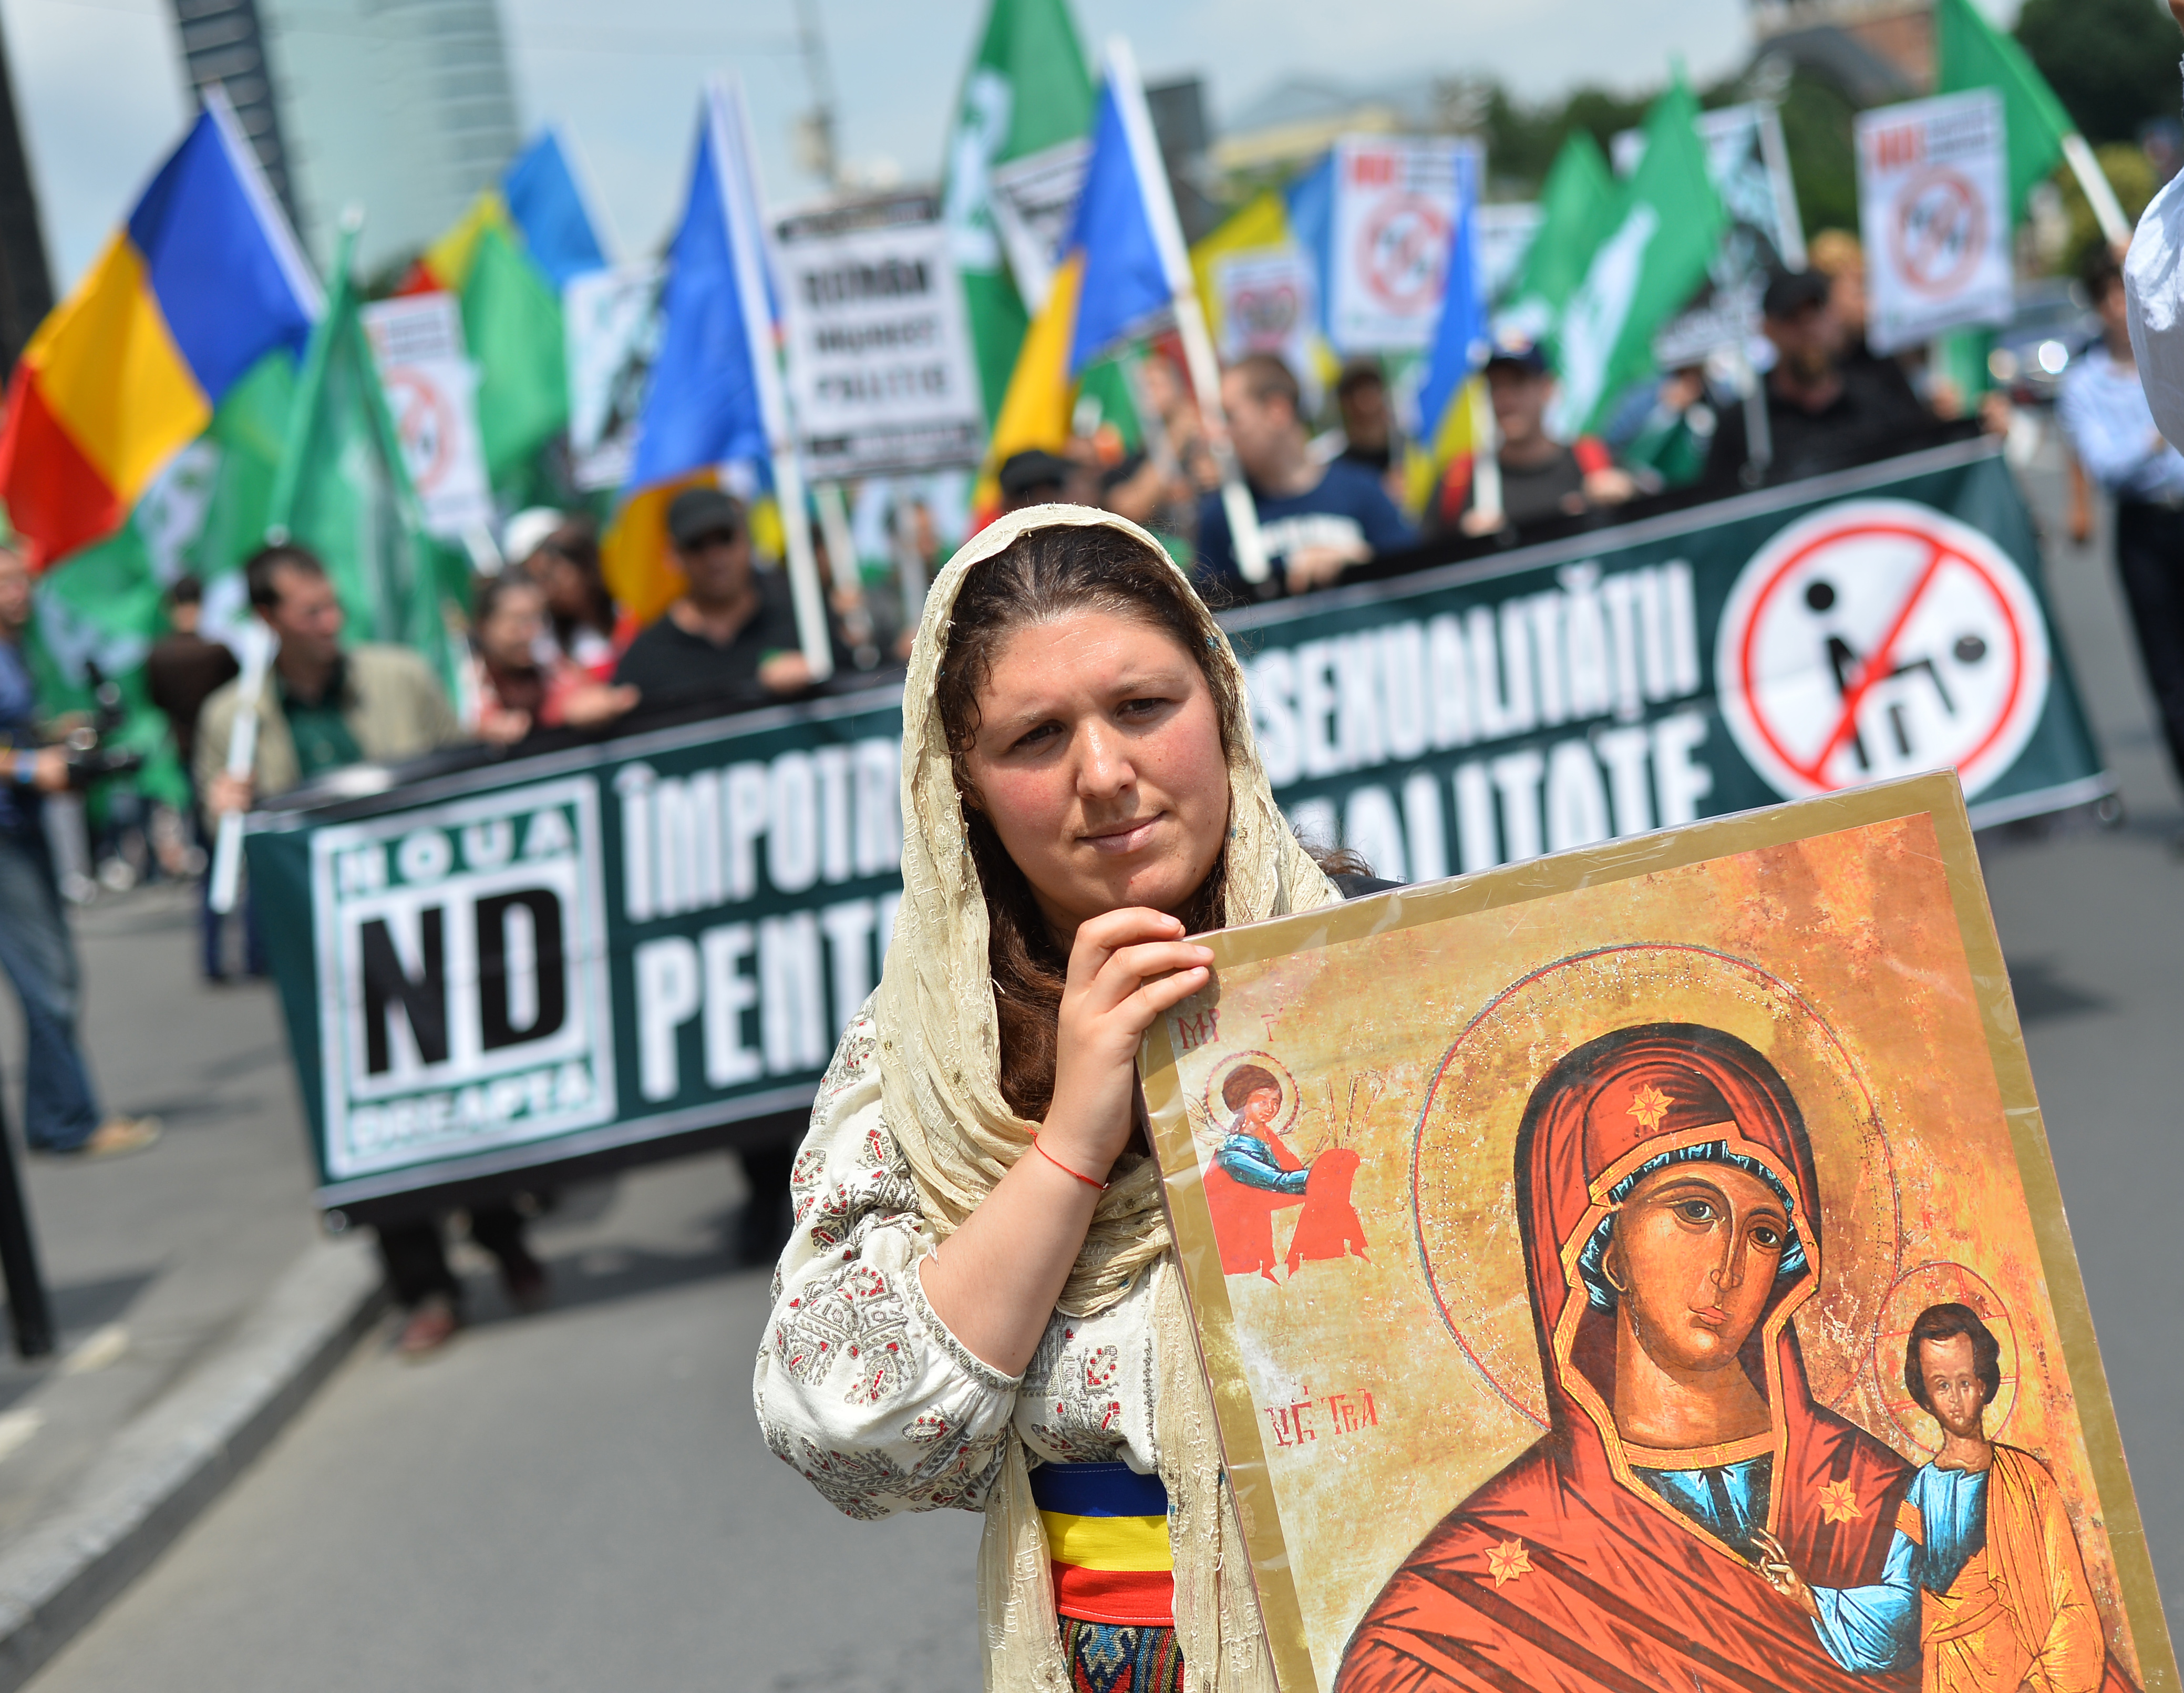 A Romanian woman holds an Orthodox icon as she marches with Romanian flag during a protest against incoming Gay Pride in Bucharest on June 8, 2013.